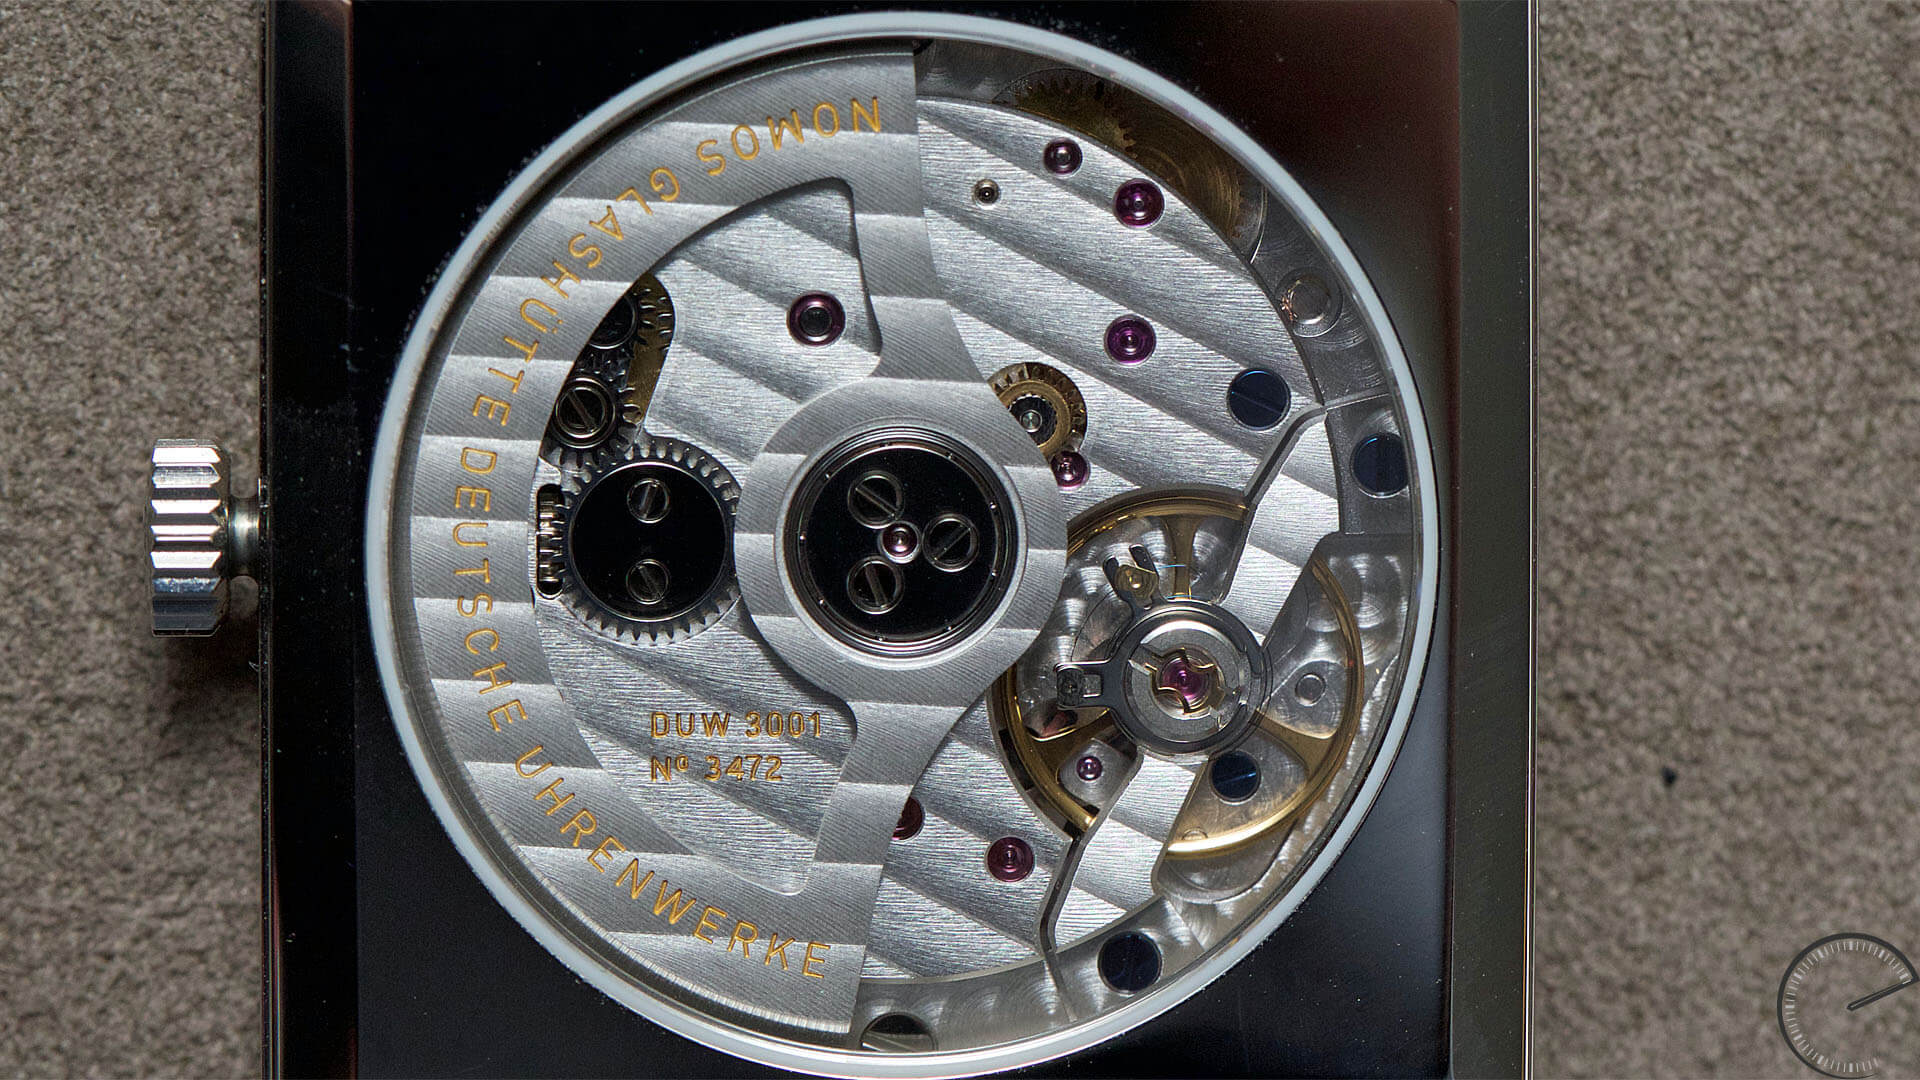 NOMOS_Glashuette_Tetra_neomatik_movement - ESCAPEMENT magazine - watch reviews by Angus Davies